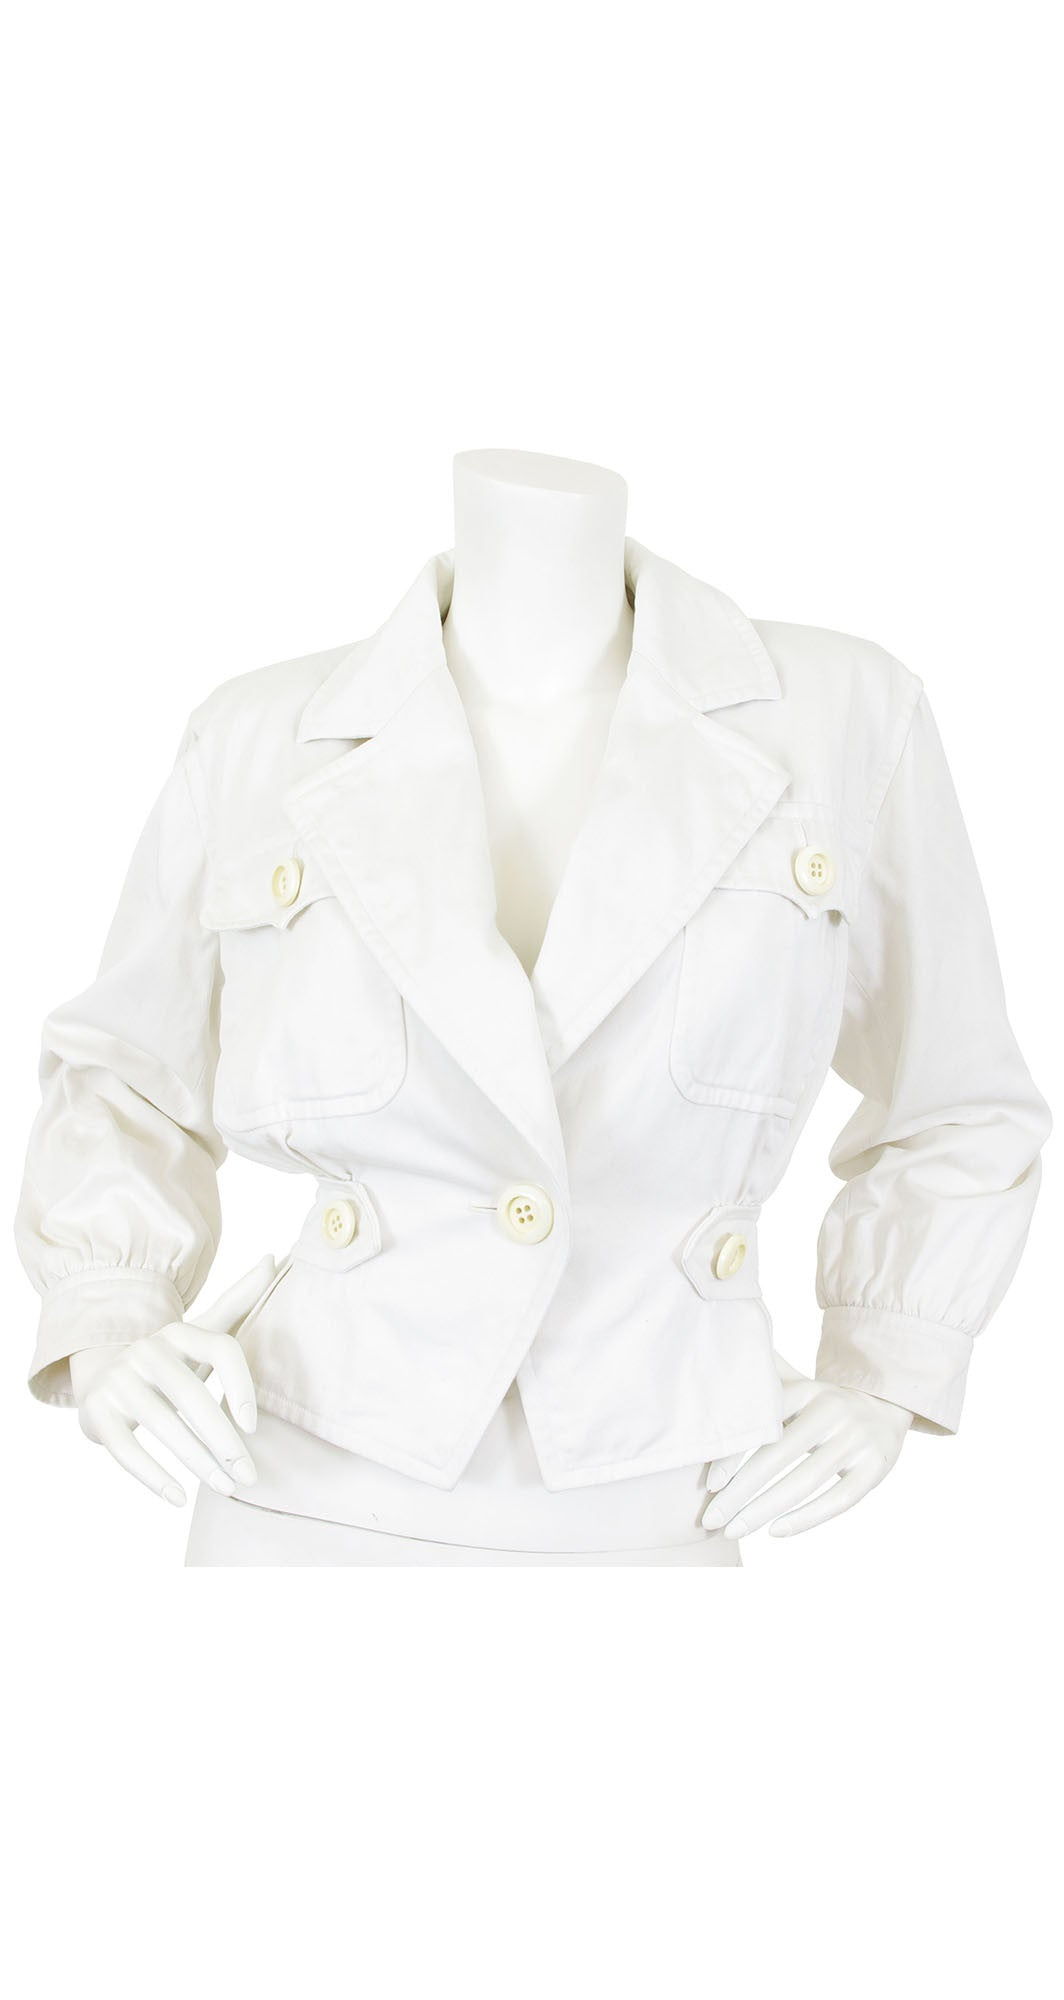 1986 Ad Campaign White Cotton Jacket